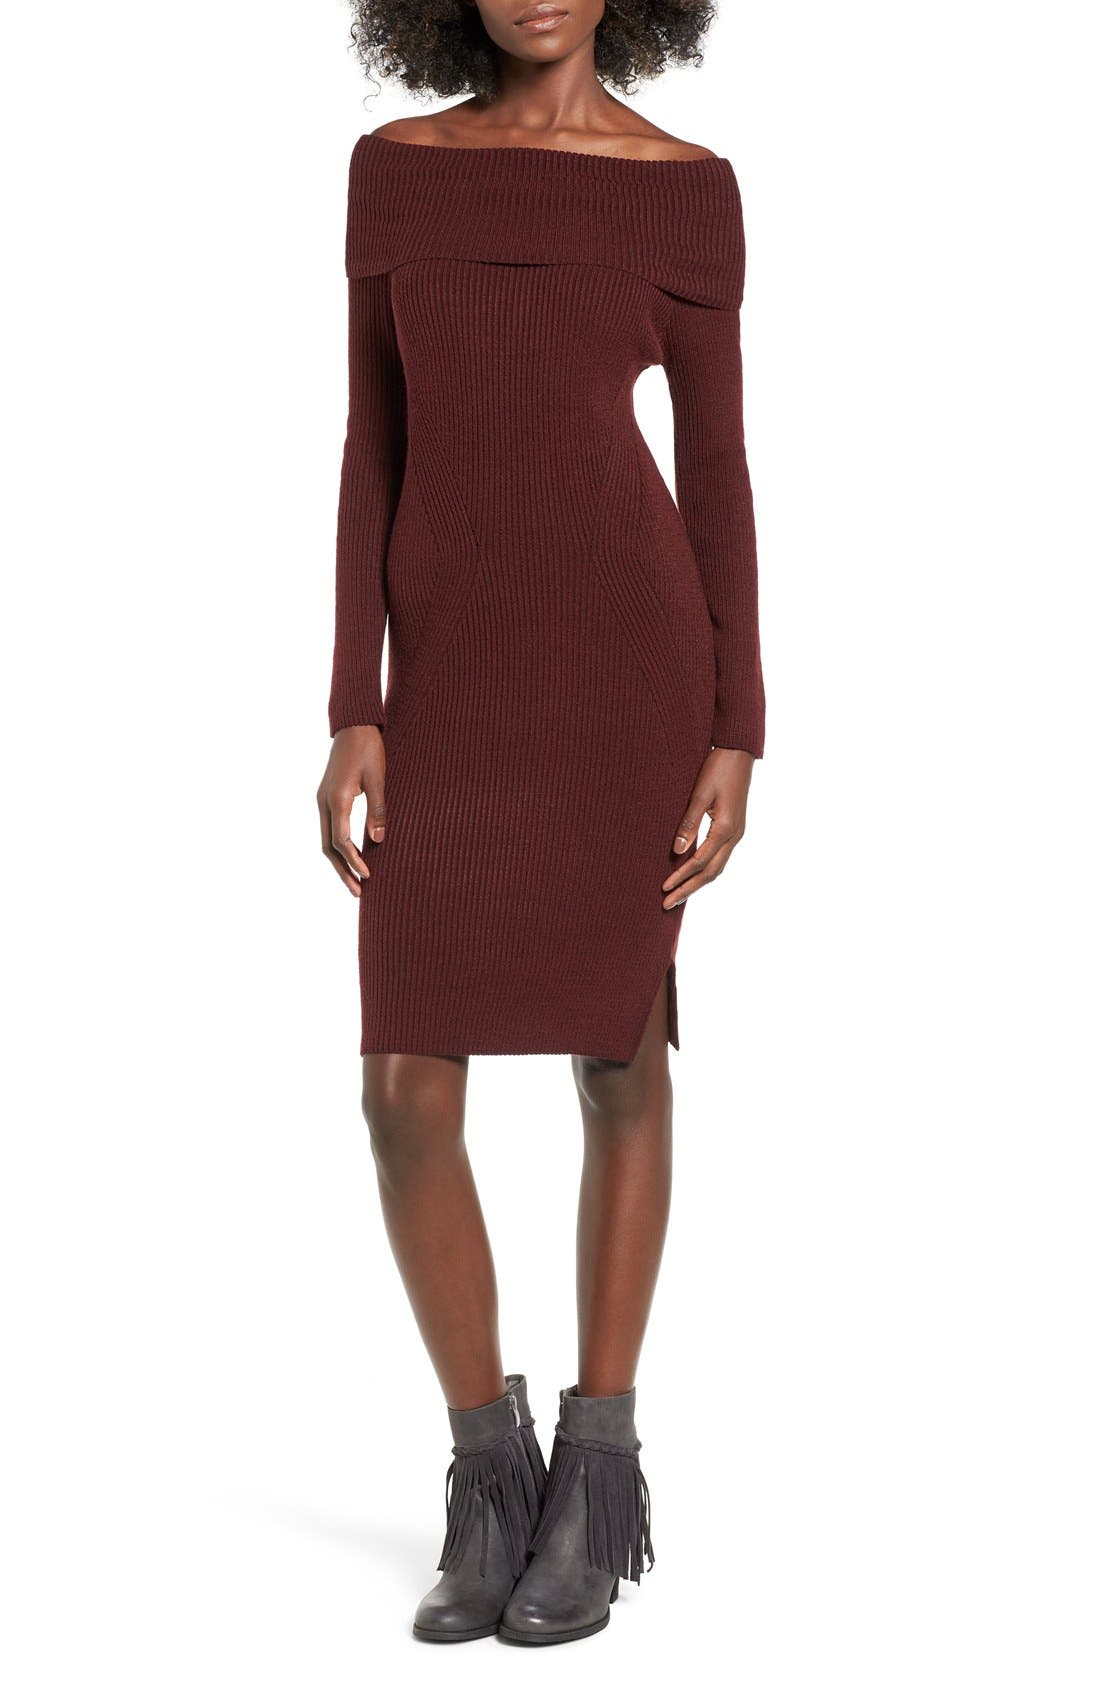 Alternate Image 1 Selected - Cotton Emporium Off the Shoulder Knit Body-Con Dress